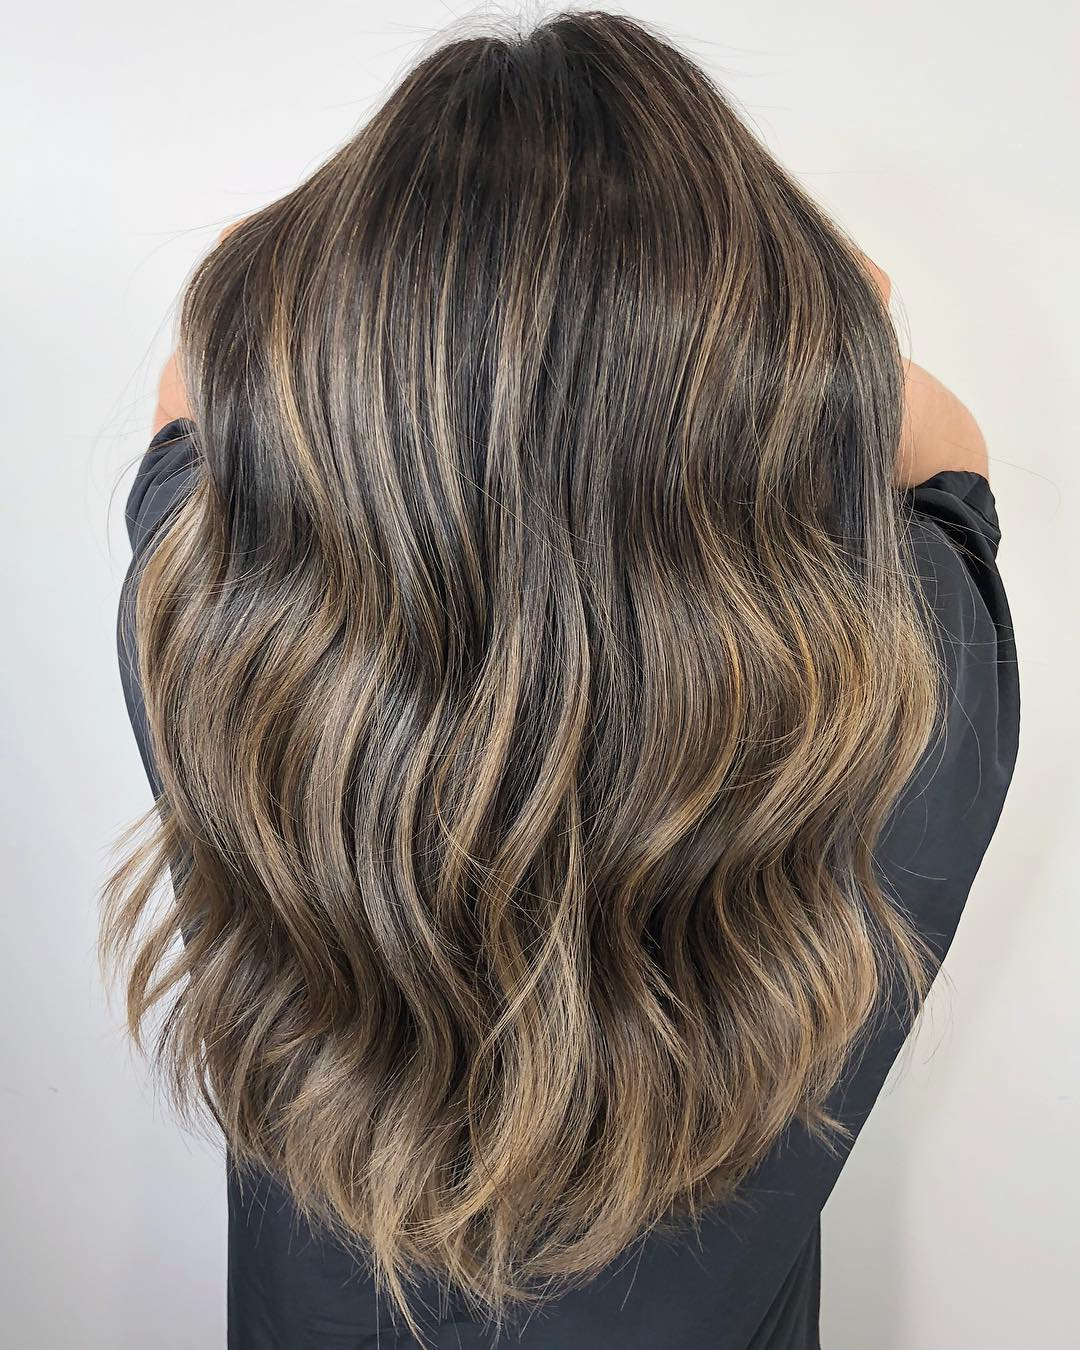 Full Silver Highlights for Brown Hair